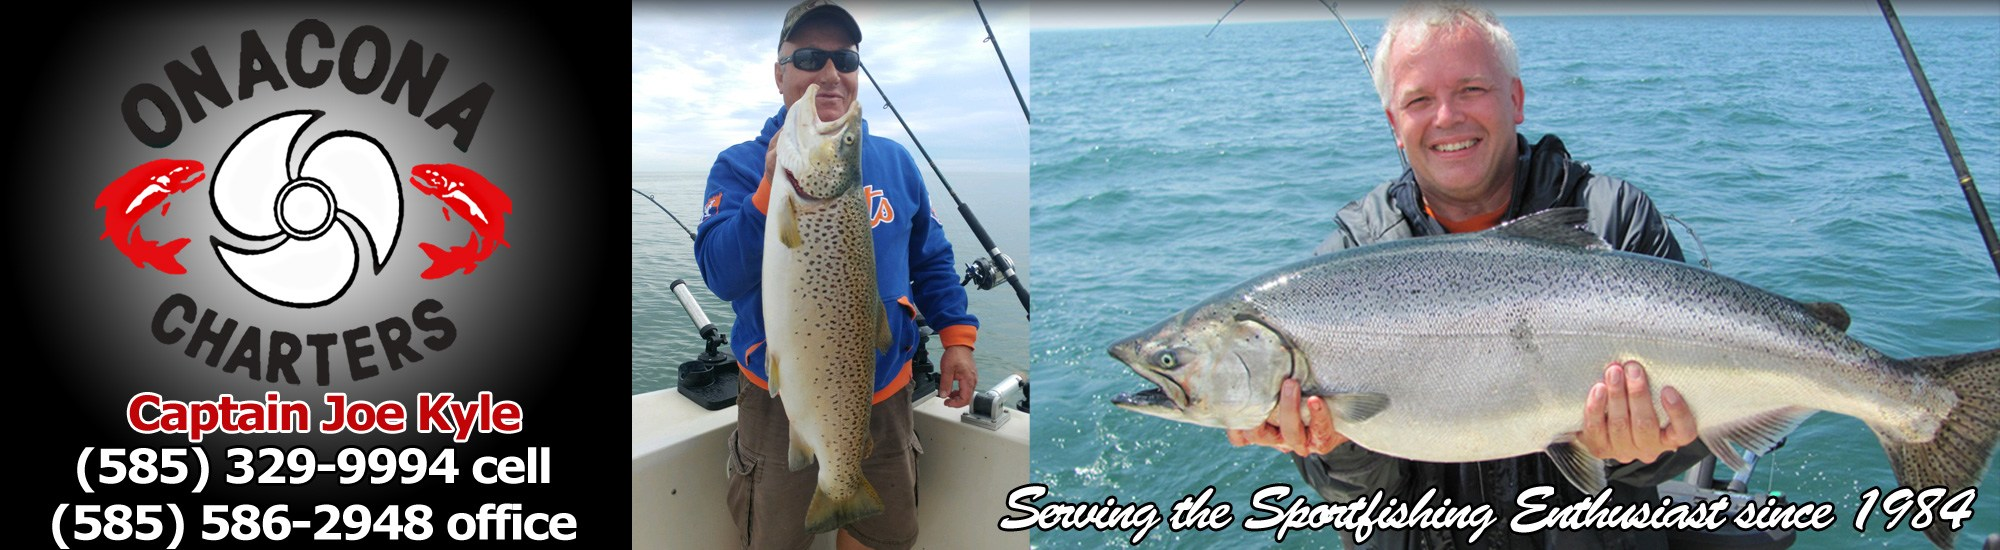 Onacona salmon trout fishing charters on lake ontario for Fishing charters rochester ny